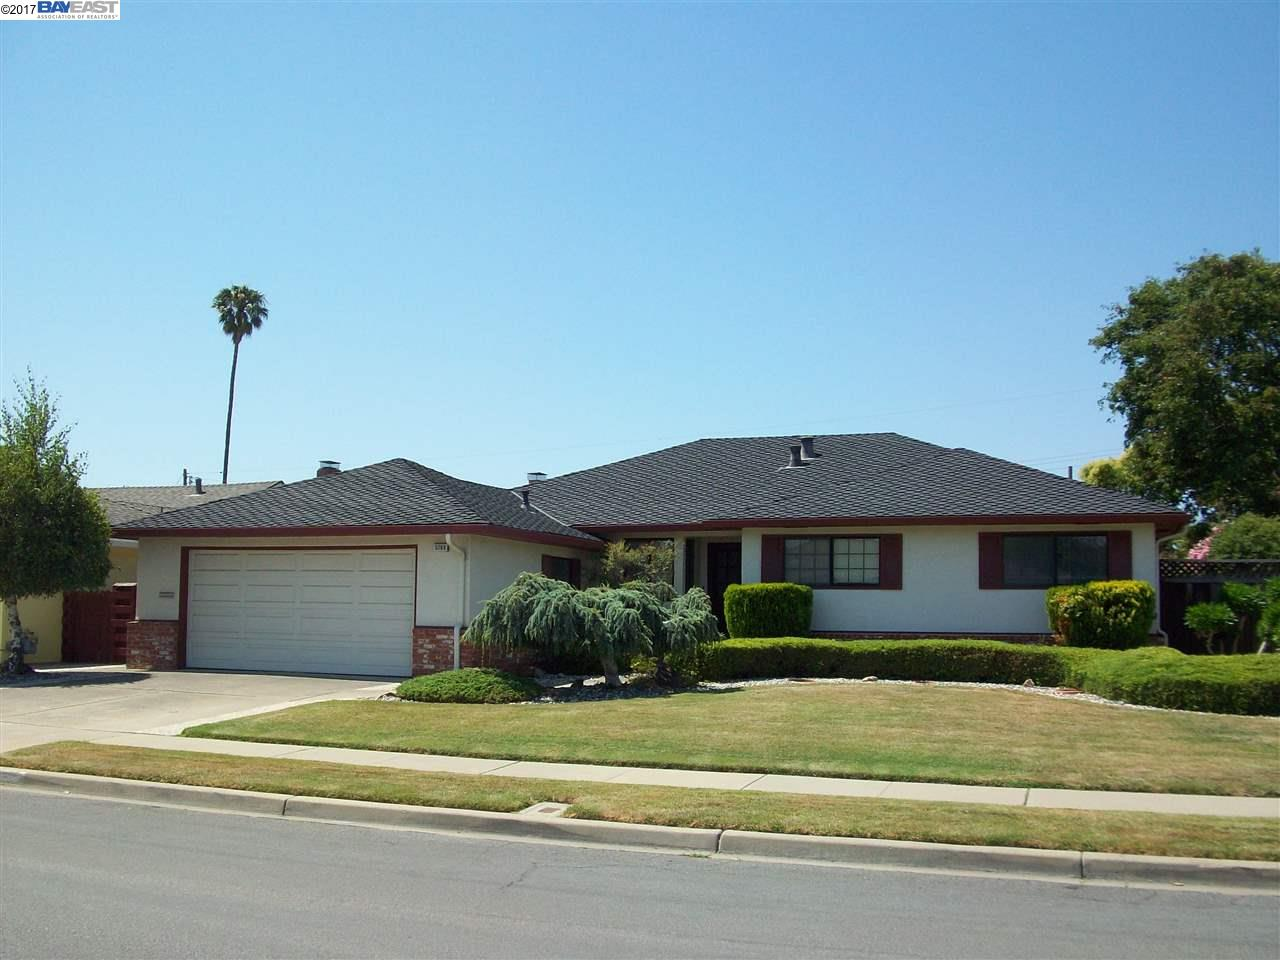 5269 Earle St, FREMONT, CA 94536